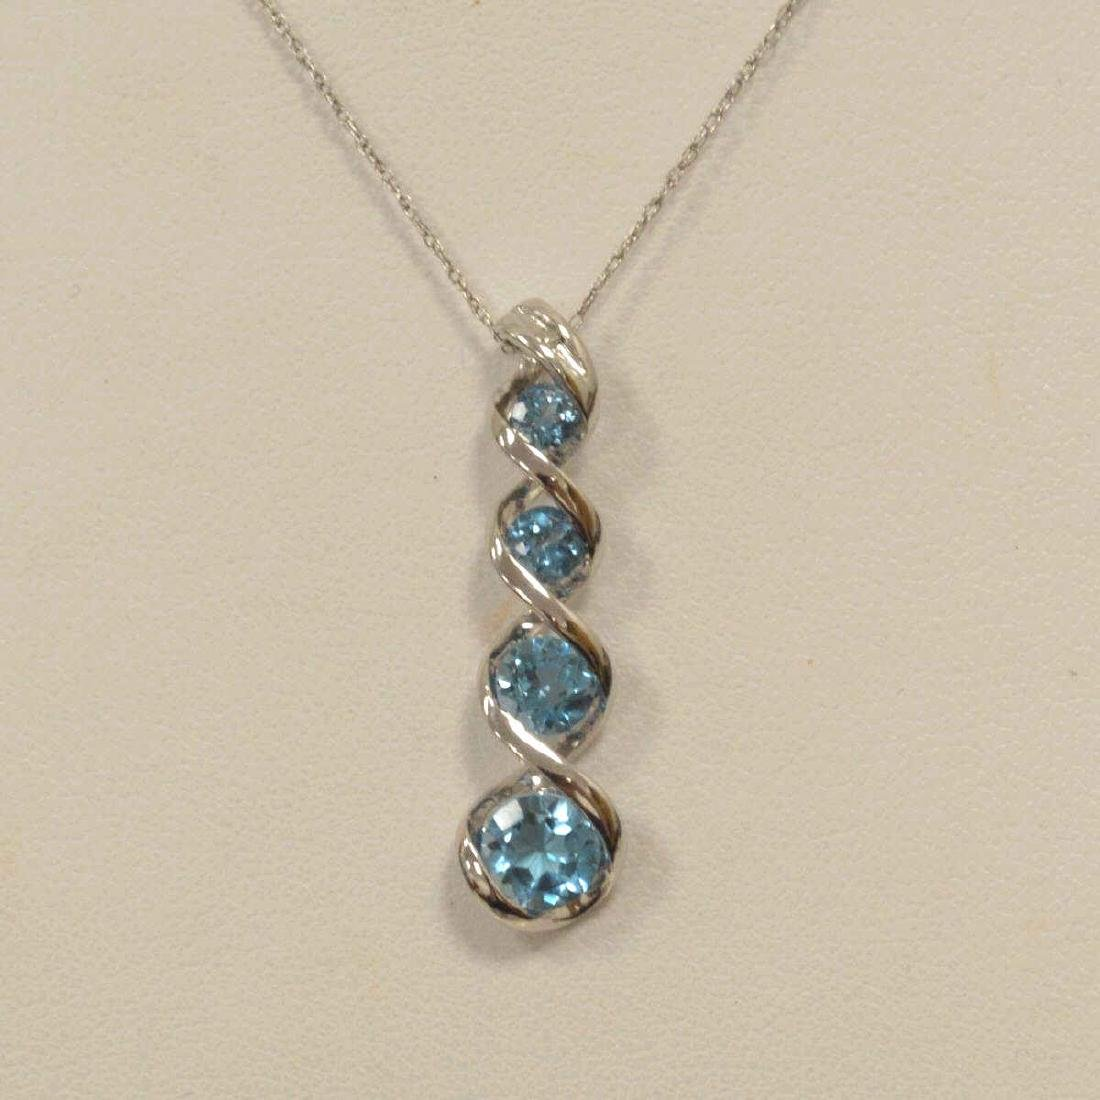 10kt white gold blue topaz necklace - 2